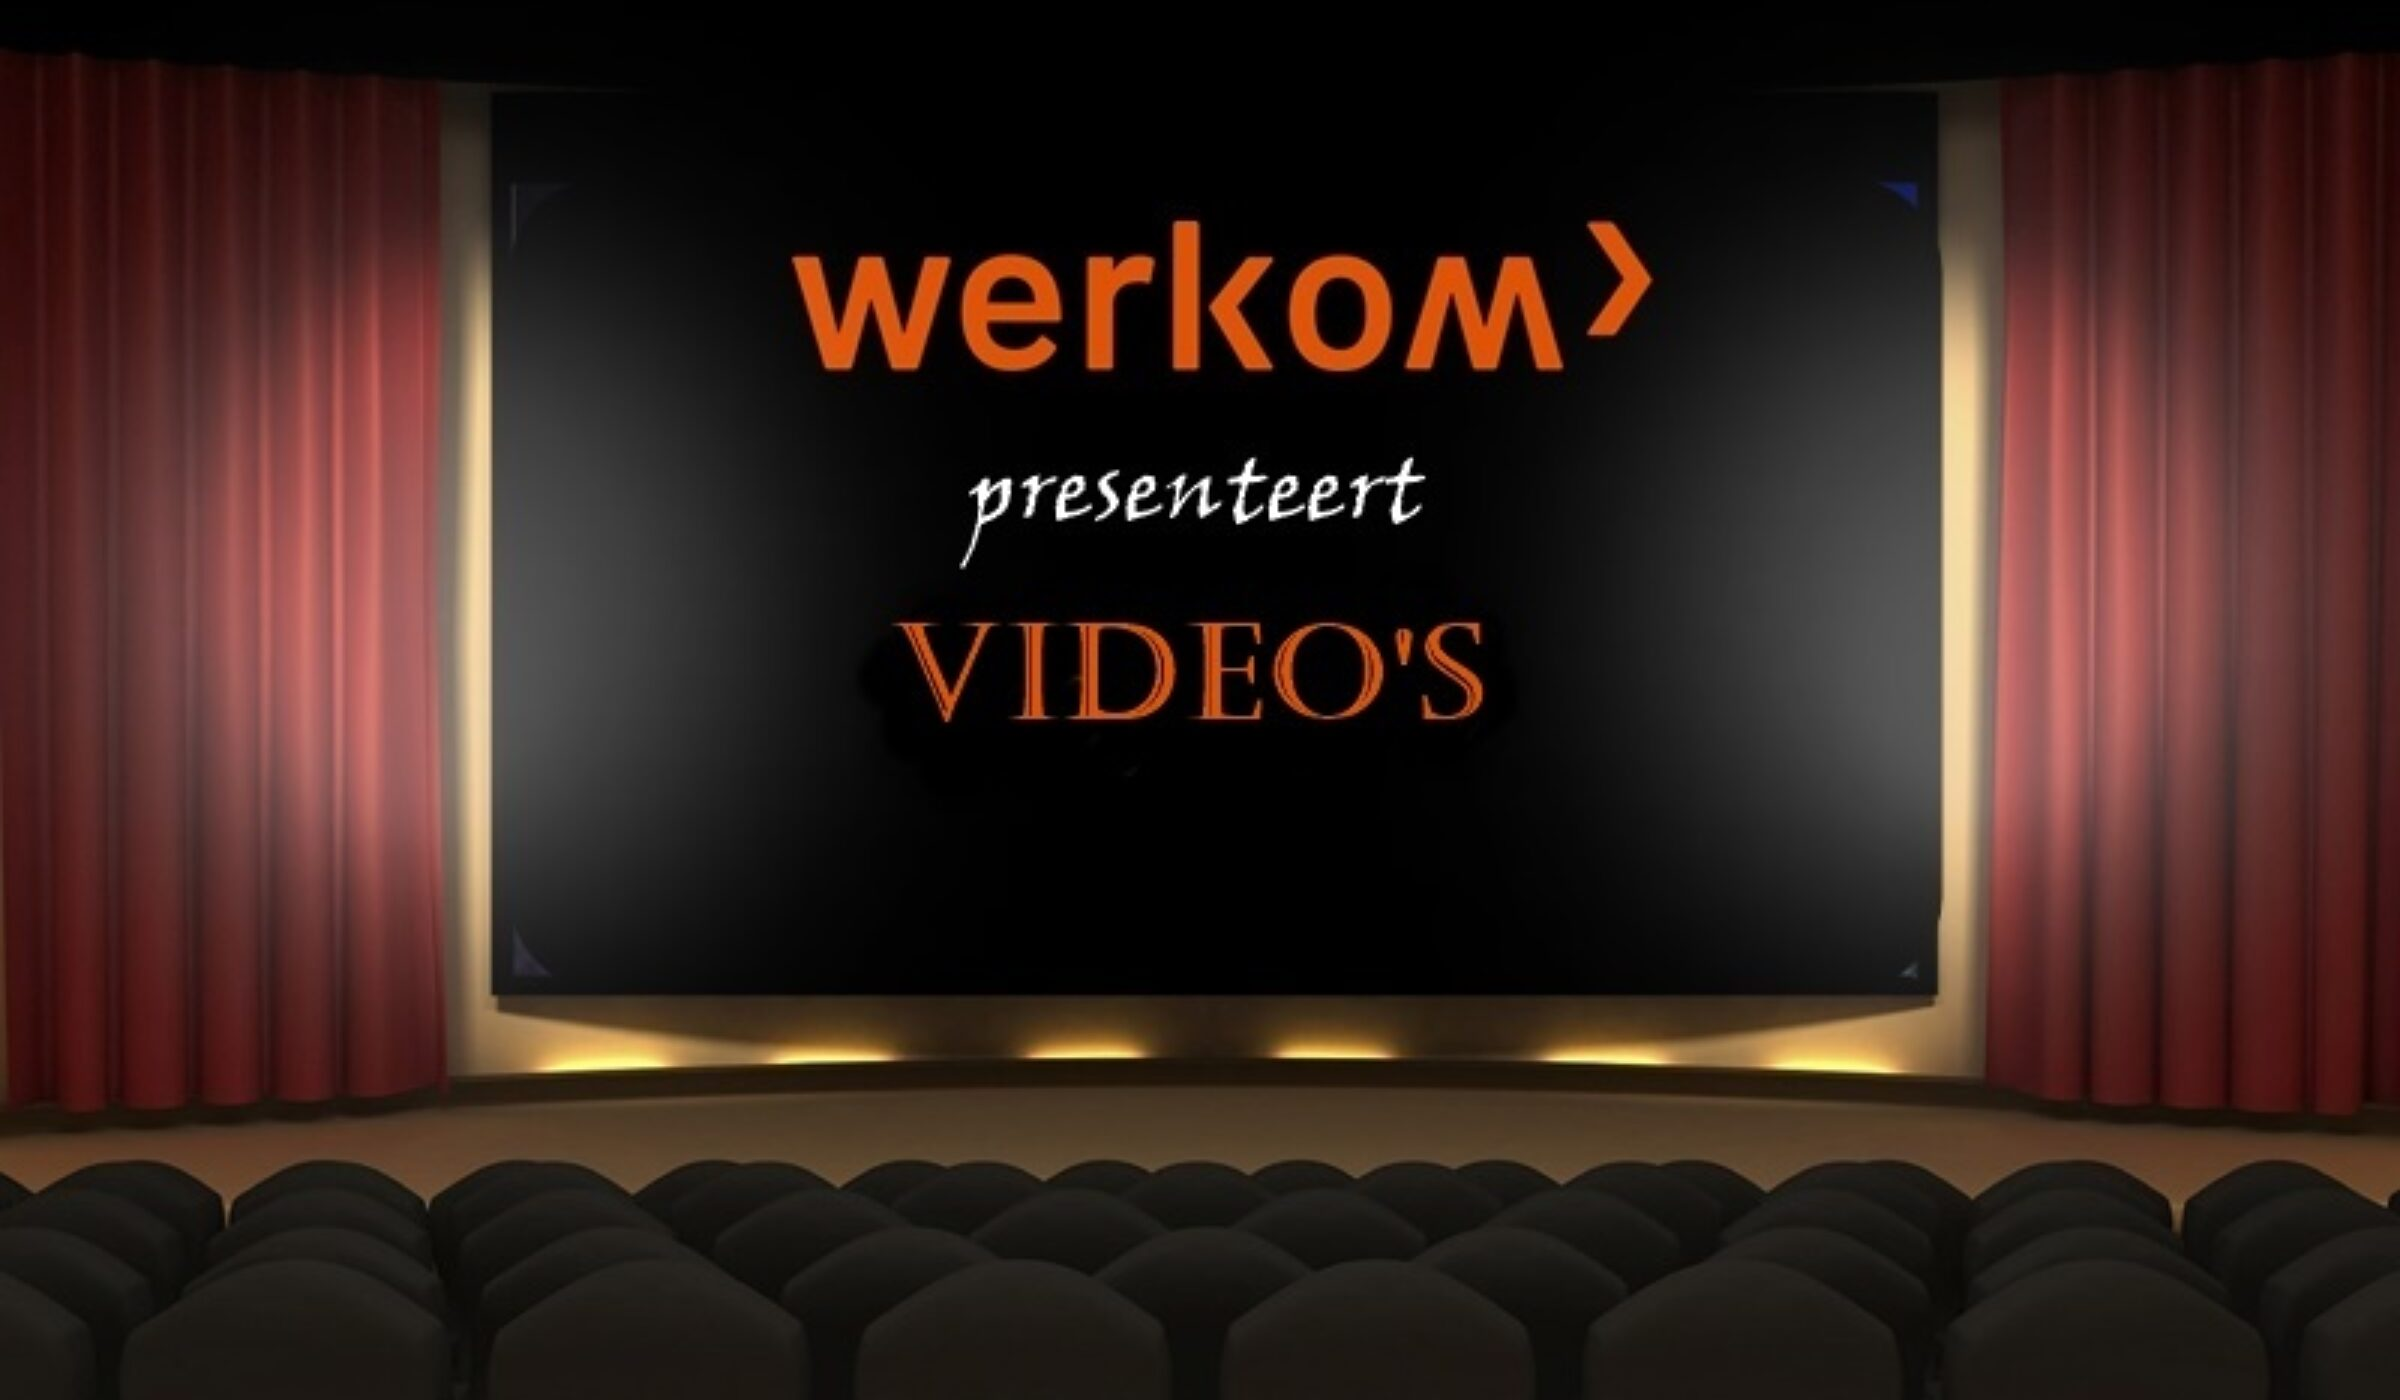 Werkom presenteert videos